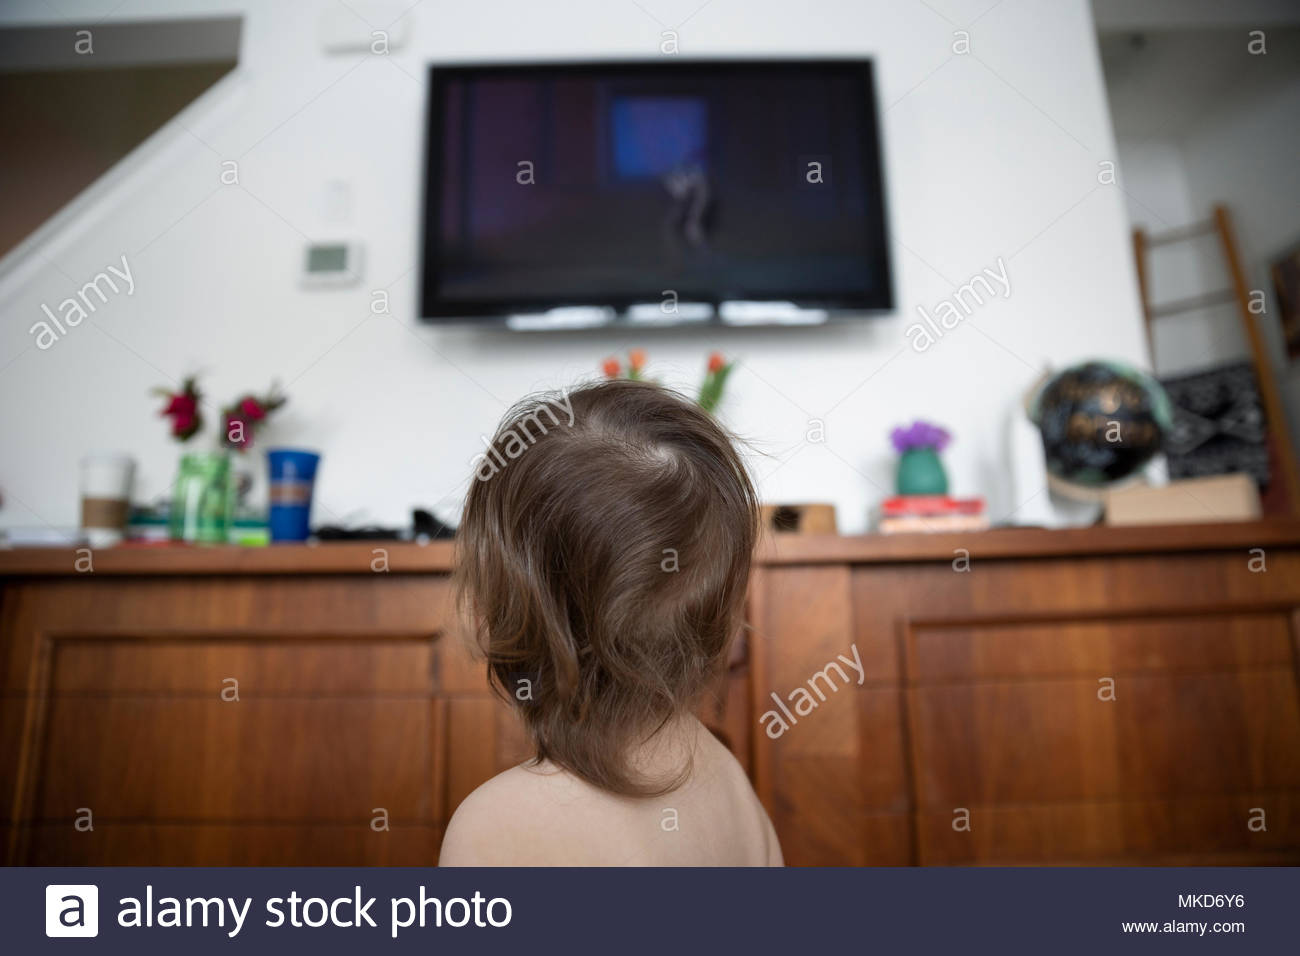 Curieux baby boy watching TV Photo Stock